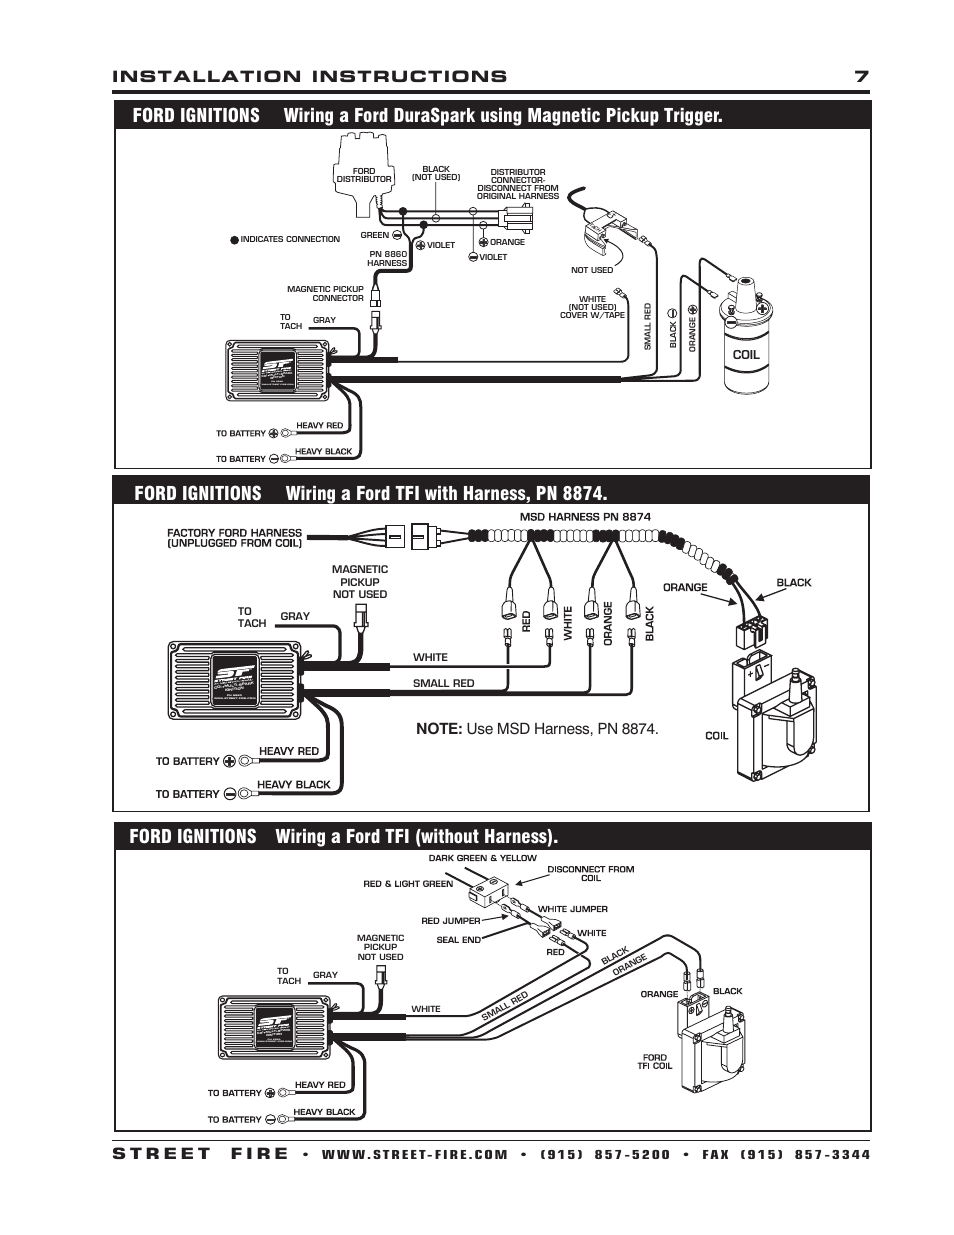 msd 5520 street fire ignition control installation page7 ford ignitions wiring a ford tfi (without harness) msd 5520 firecom intercom wiring diagrams at gsmx.co